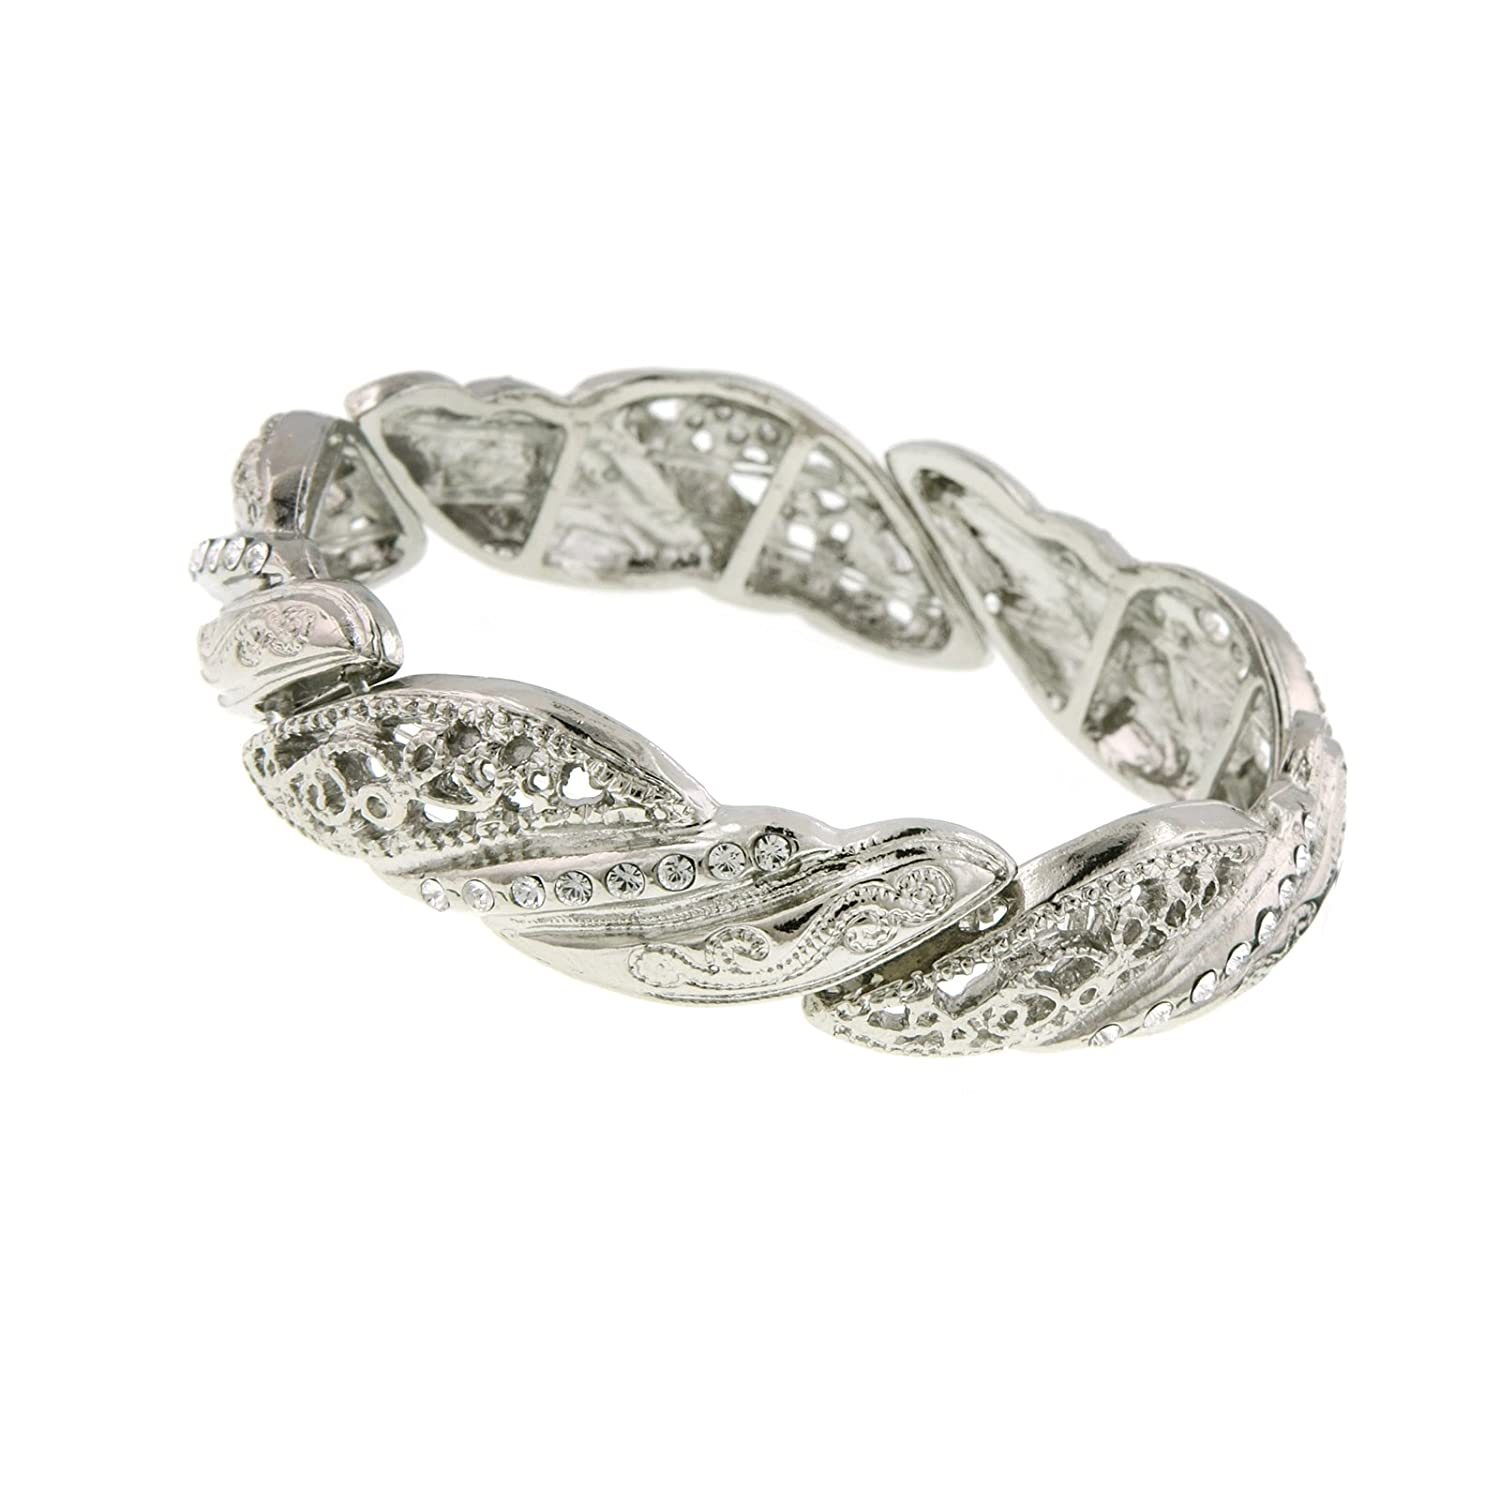 1930s Outfit Ideas for Women 1928 Jewelry Silver Filigree Twist Crystal Bracelet $28.00 AT vintagedancer.com